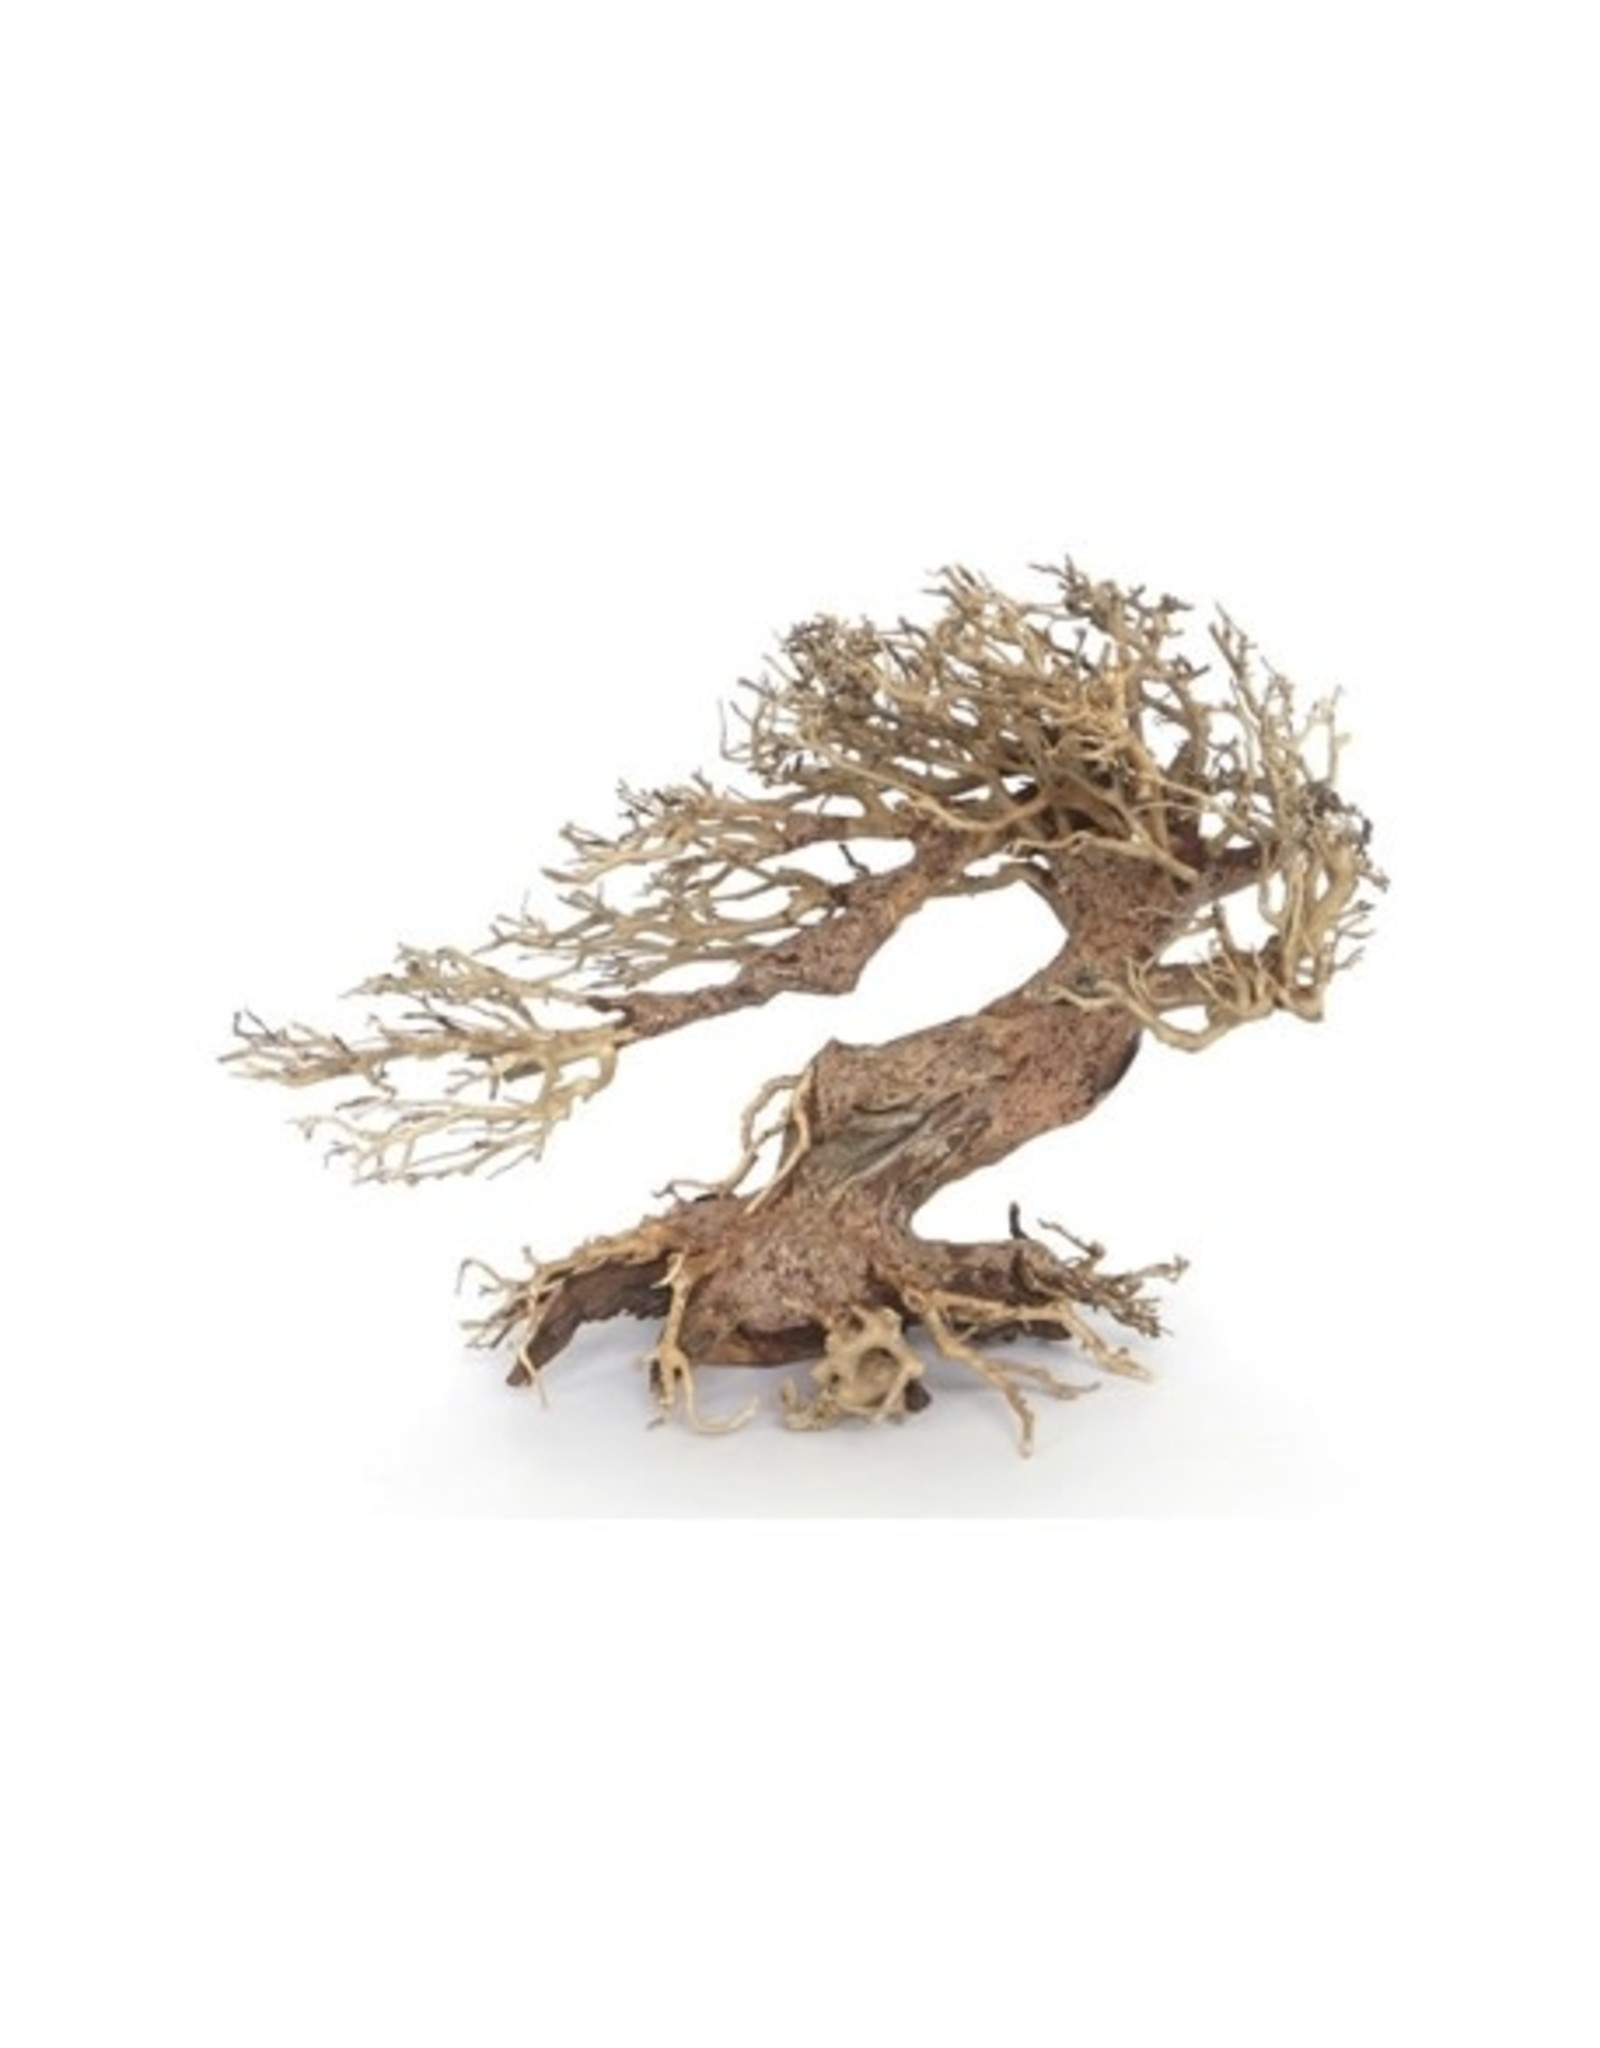 Bonsai - LEGNO ORIENTAL WIND 3 MD 30X13X23CM 1P